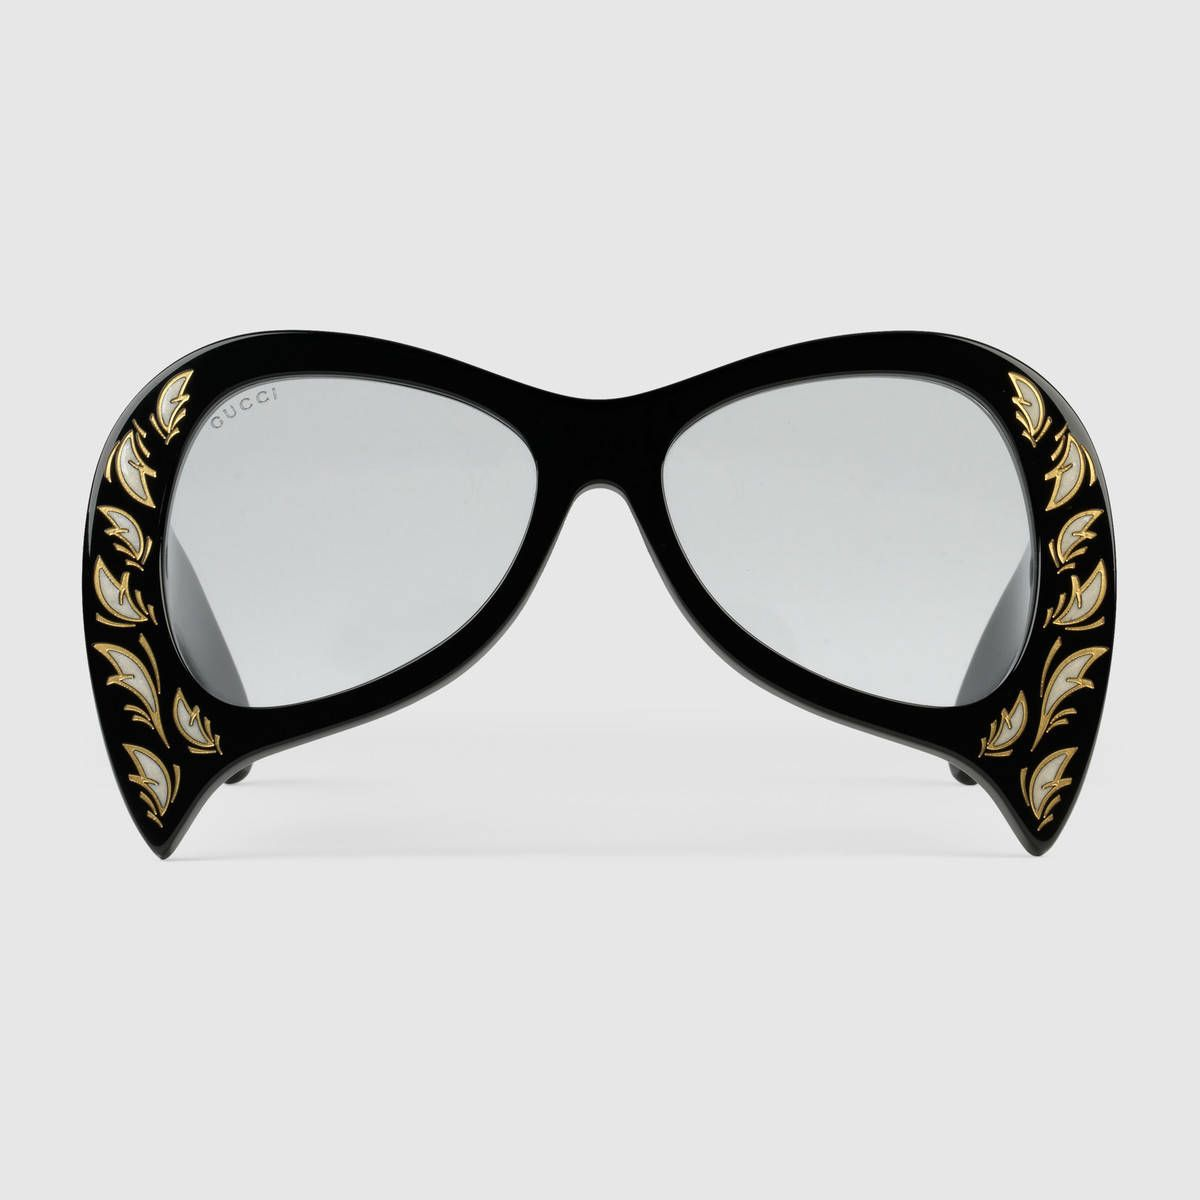 811b7a8d0f Oversize sunglasses with mother of pearl details